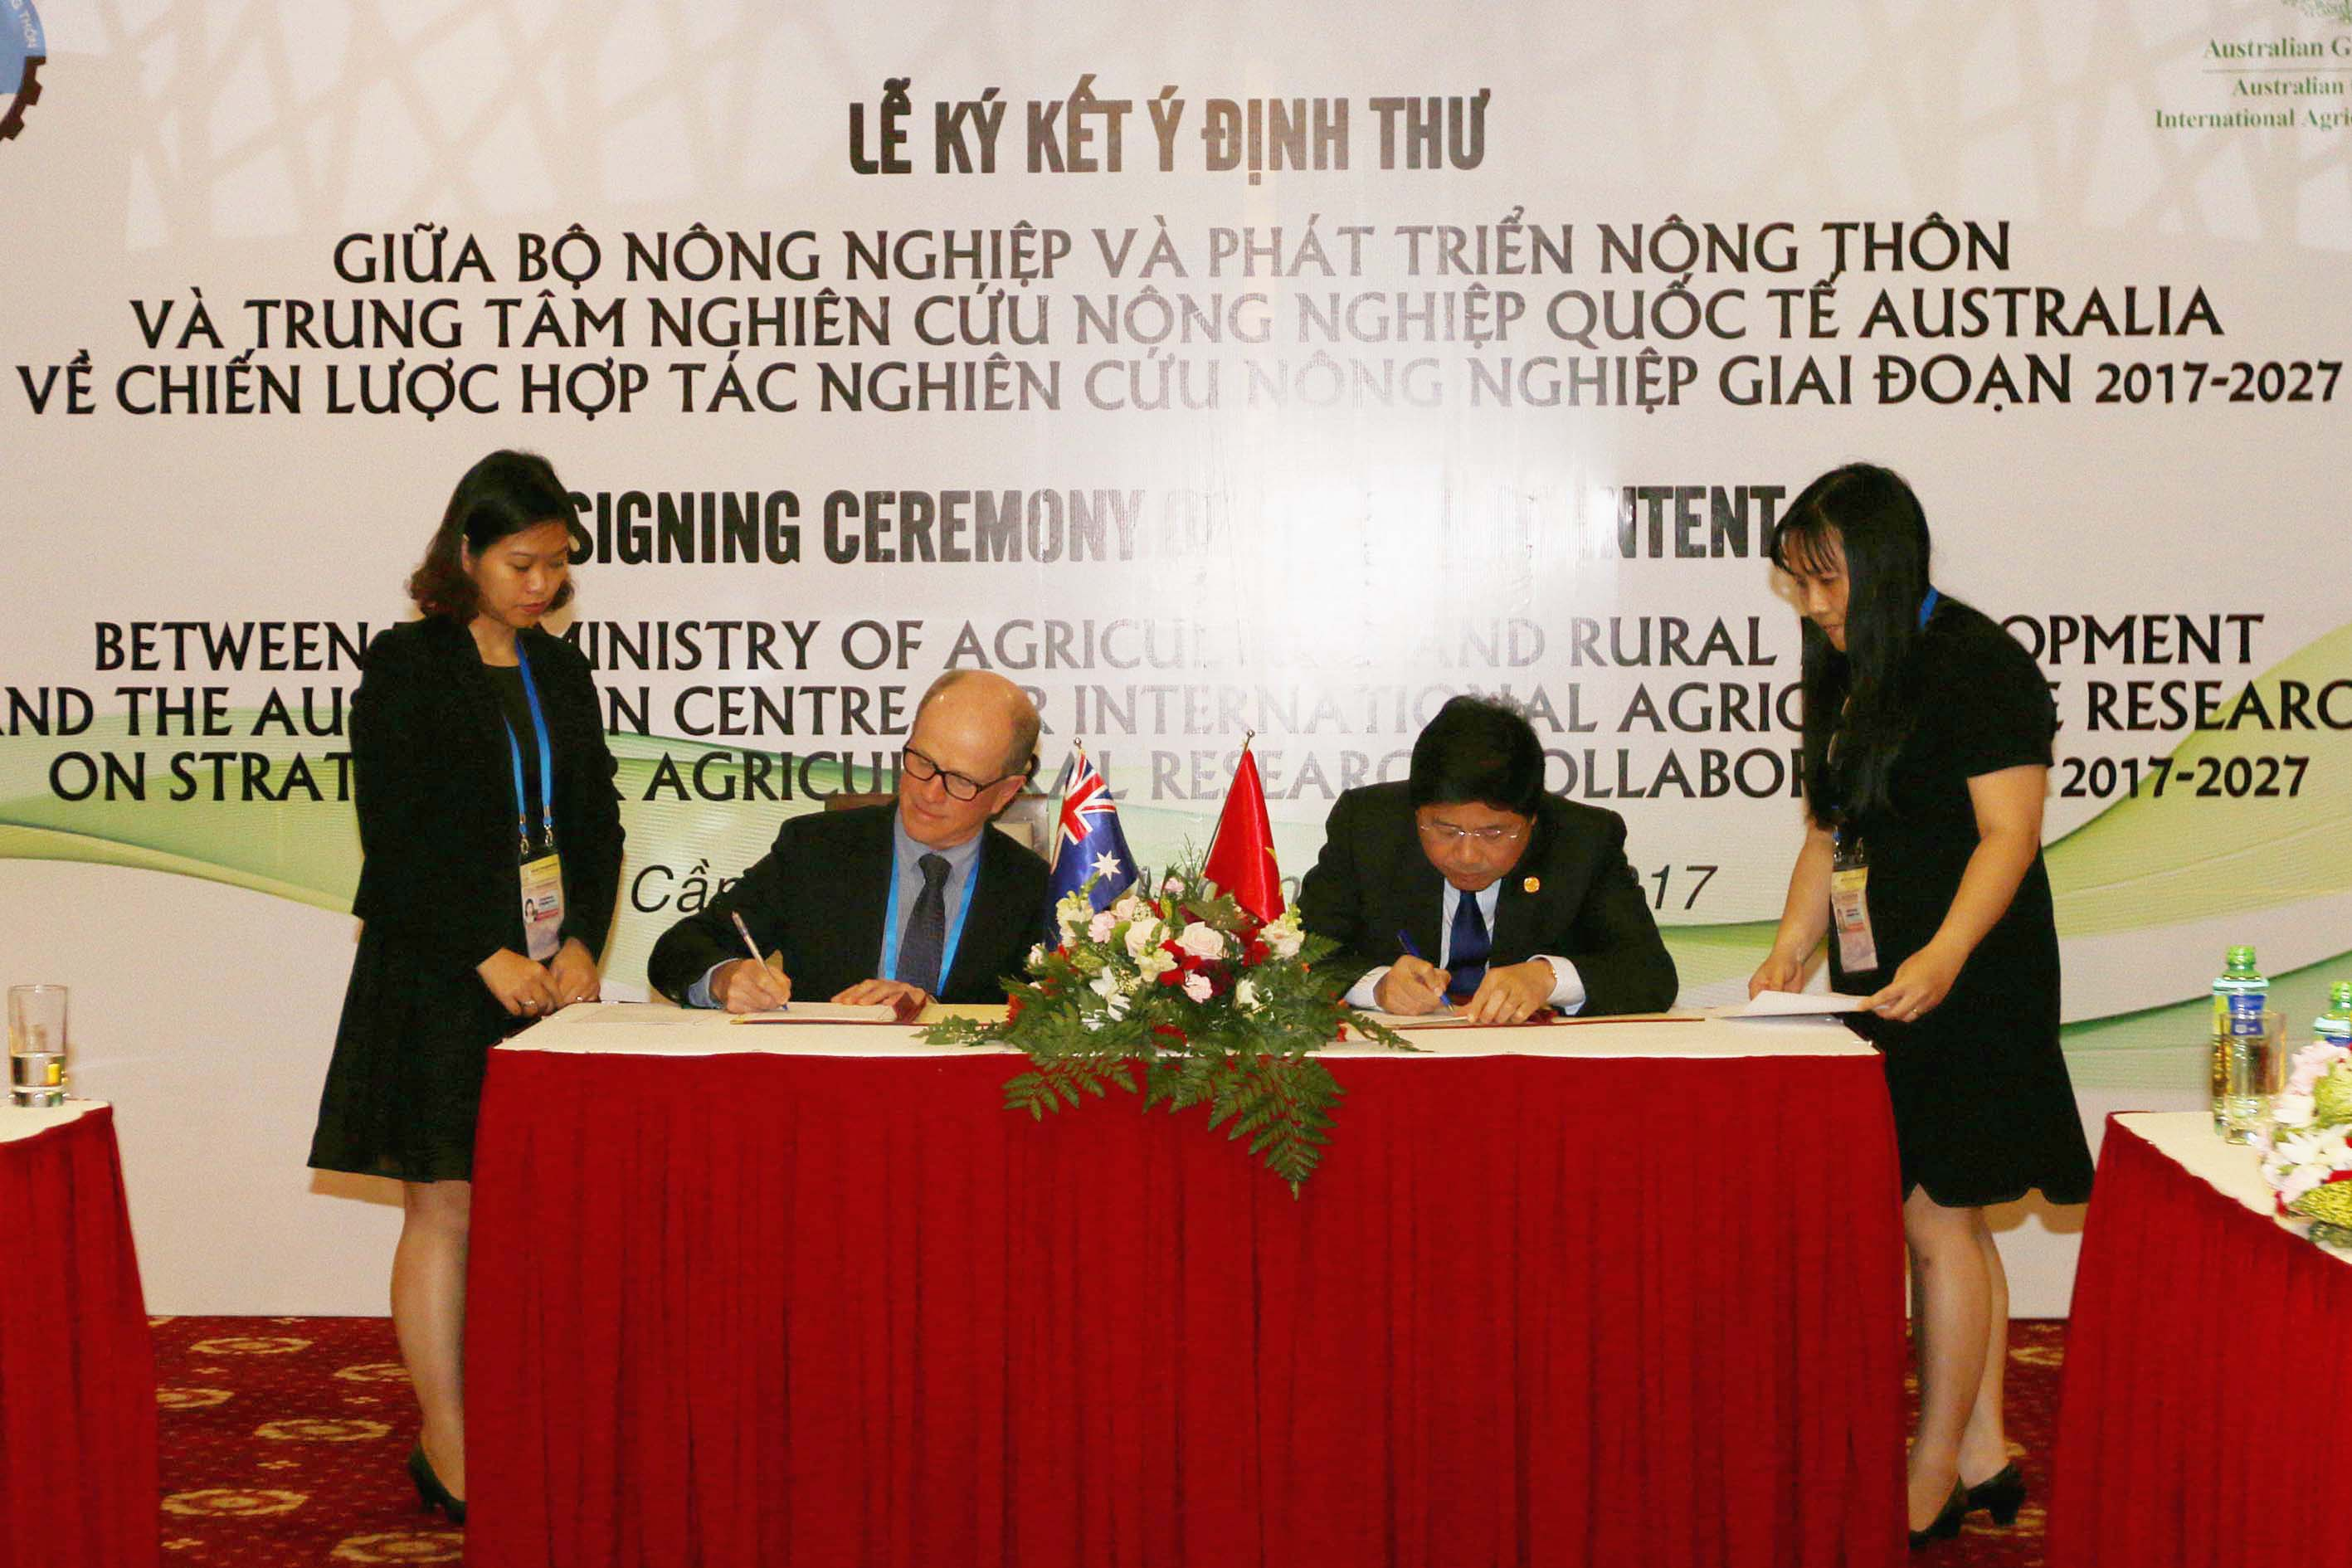 Australia and Vietnam commit to a long-term partnership in agricultural research